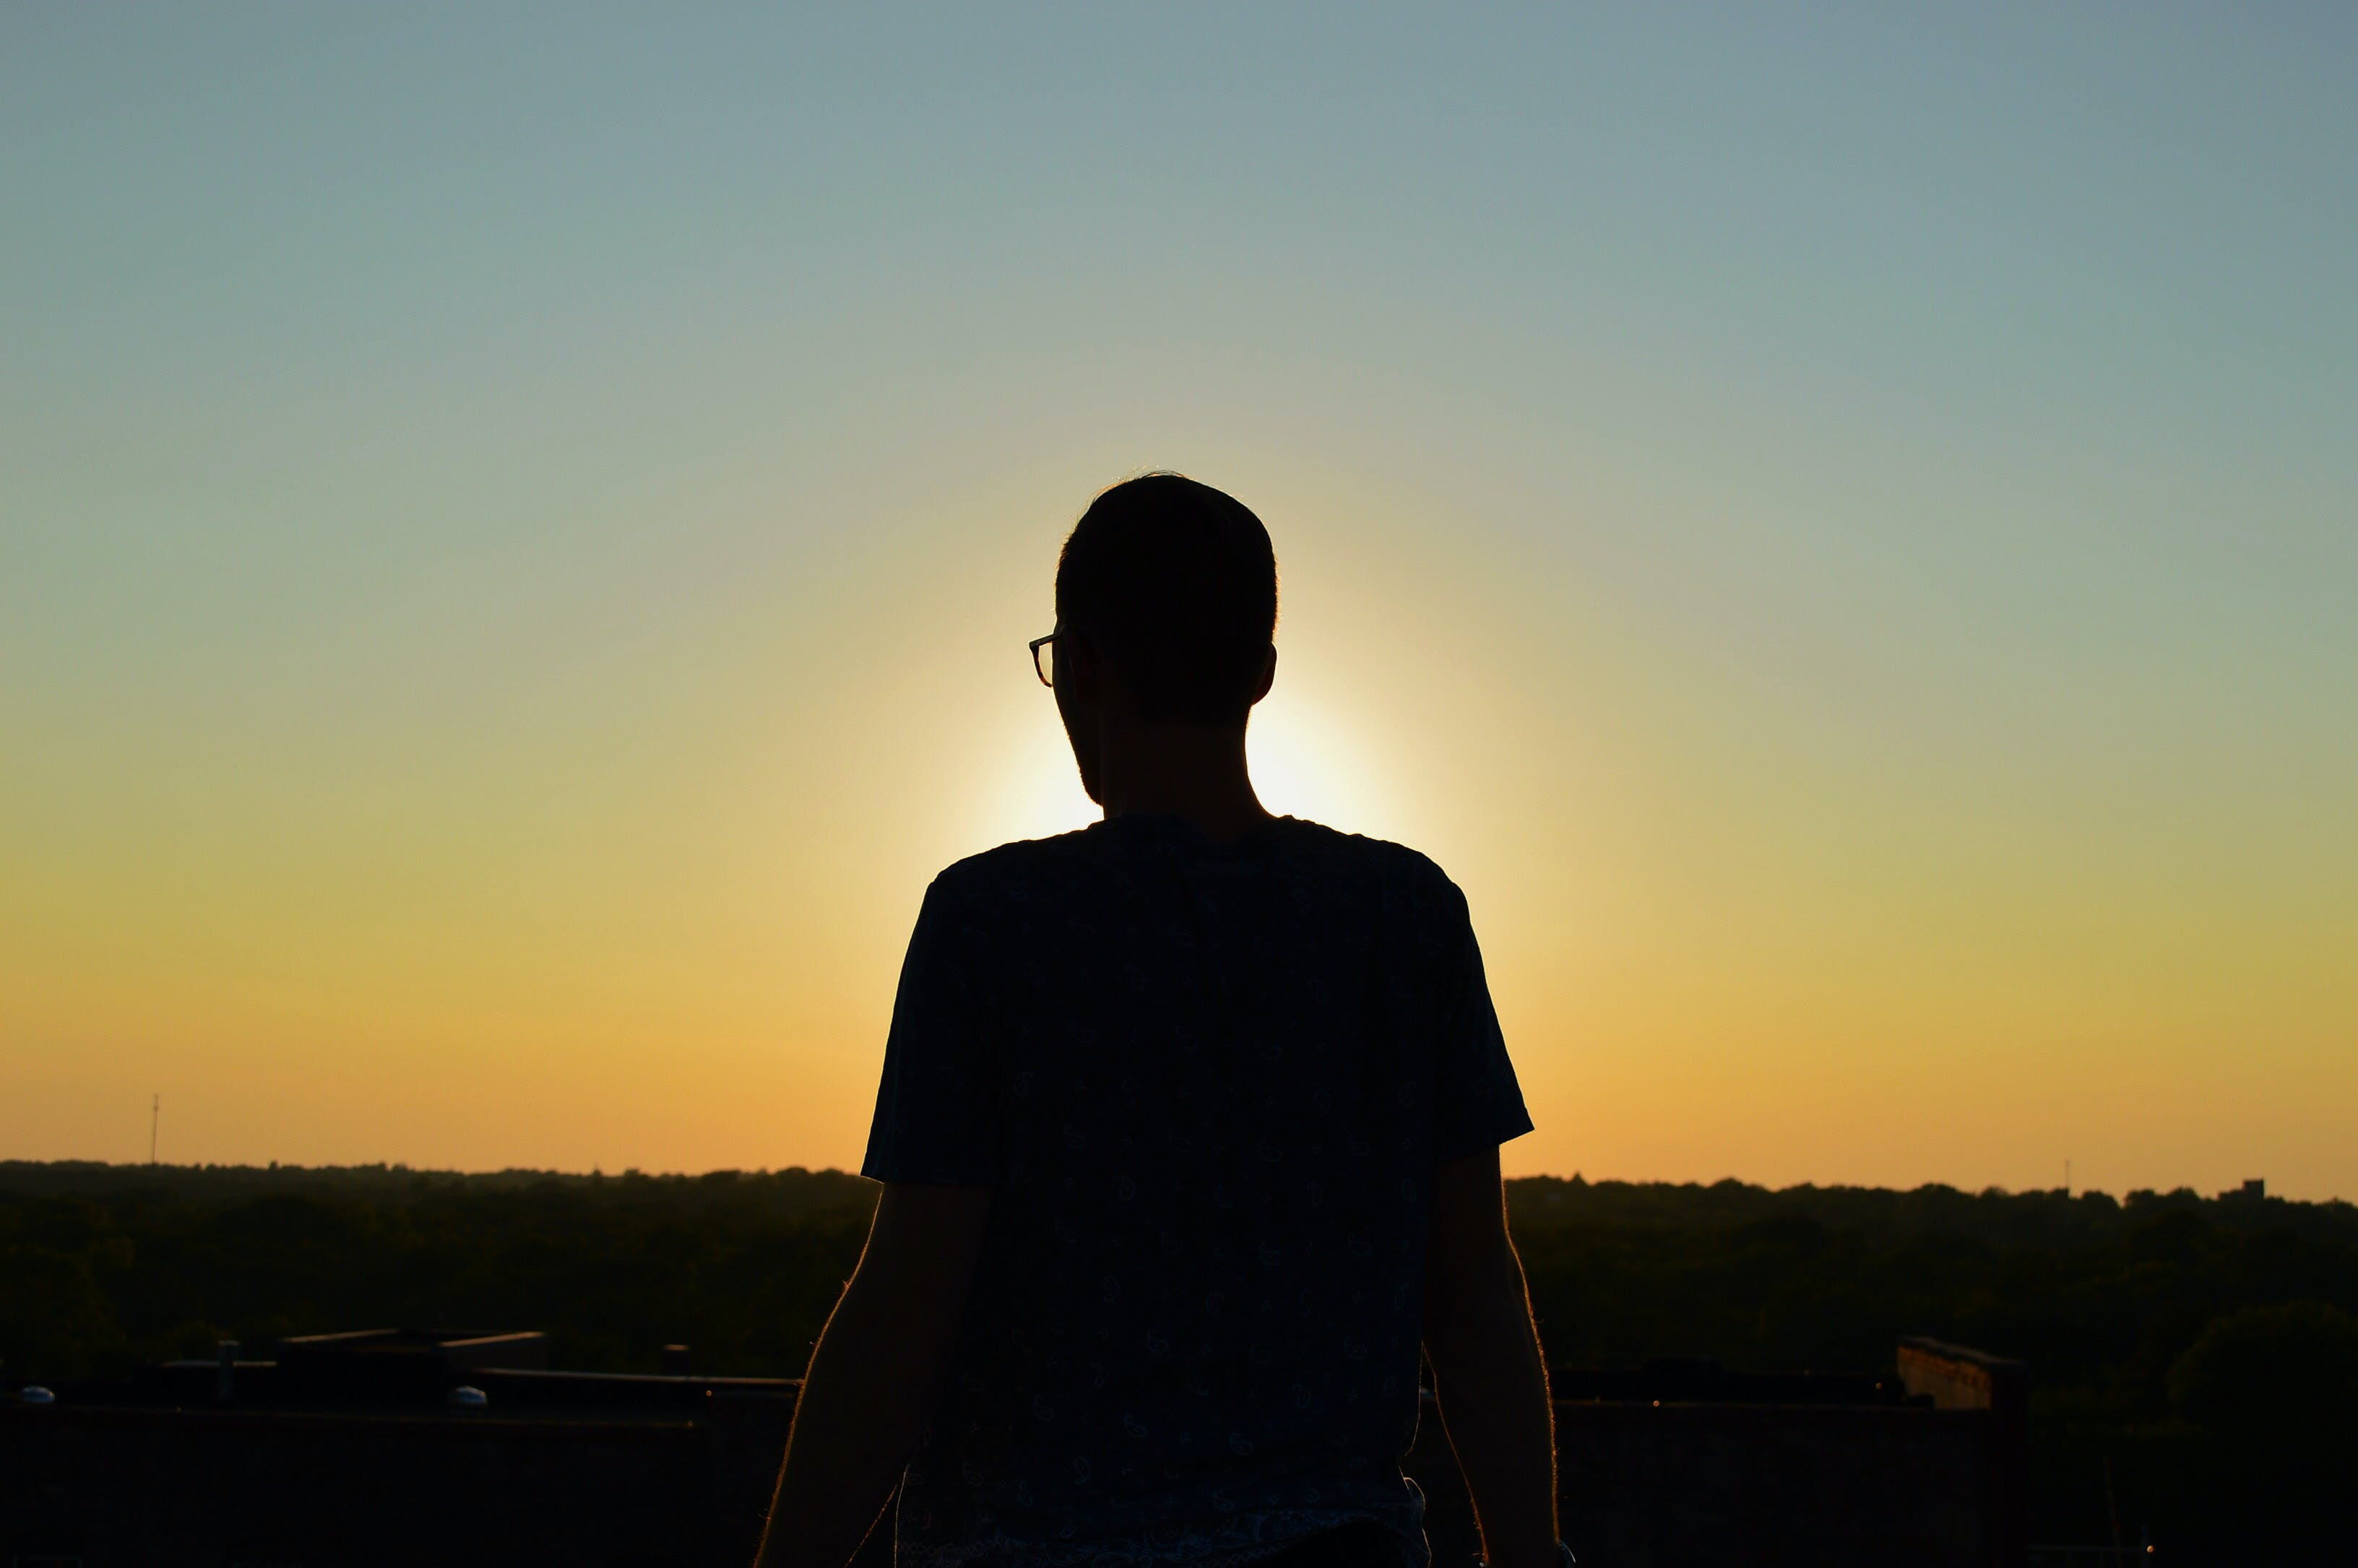 Silhouette of Man Photography